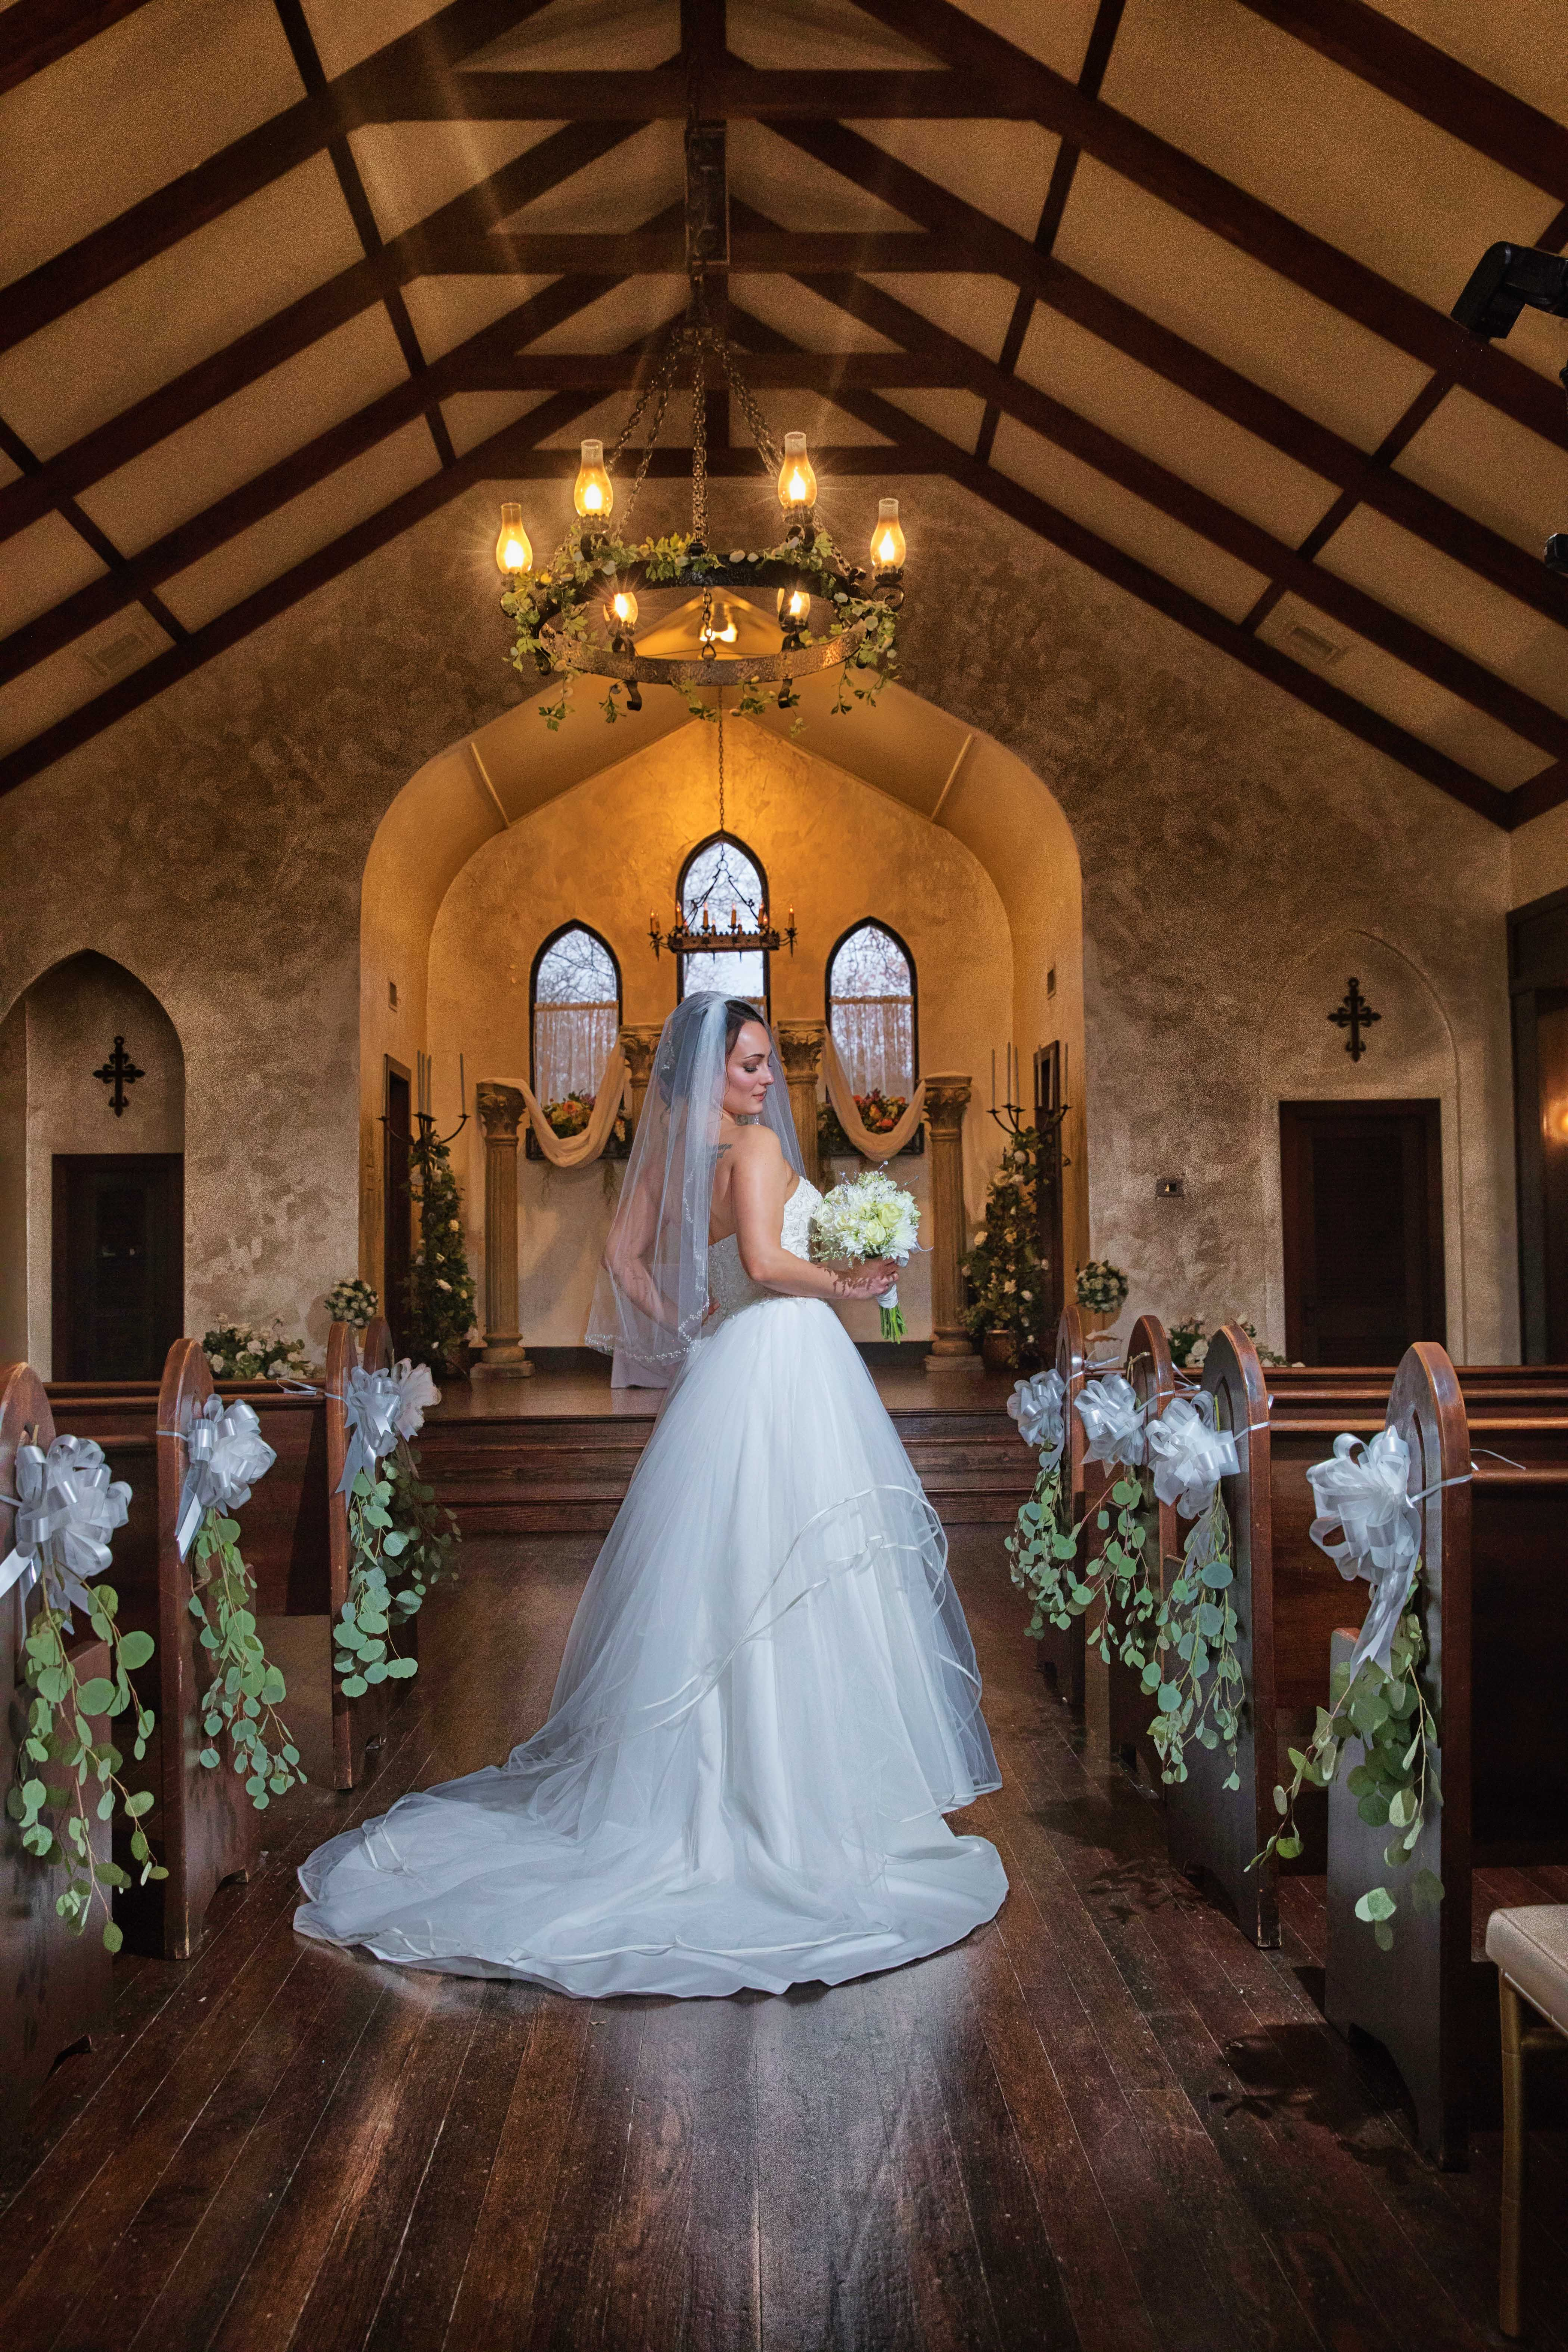 Pin On Wedding Venue Chapel Reception Hall In The San Antonio Tx Area Hill Country Kerrville Boerne Texas All Inclusive Wedding Catering Wedding Rehearsal